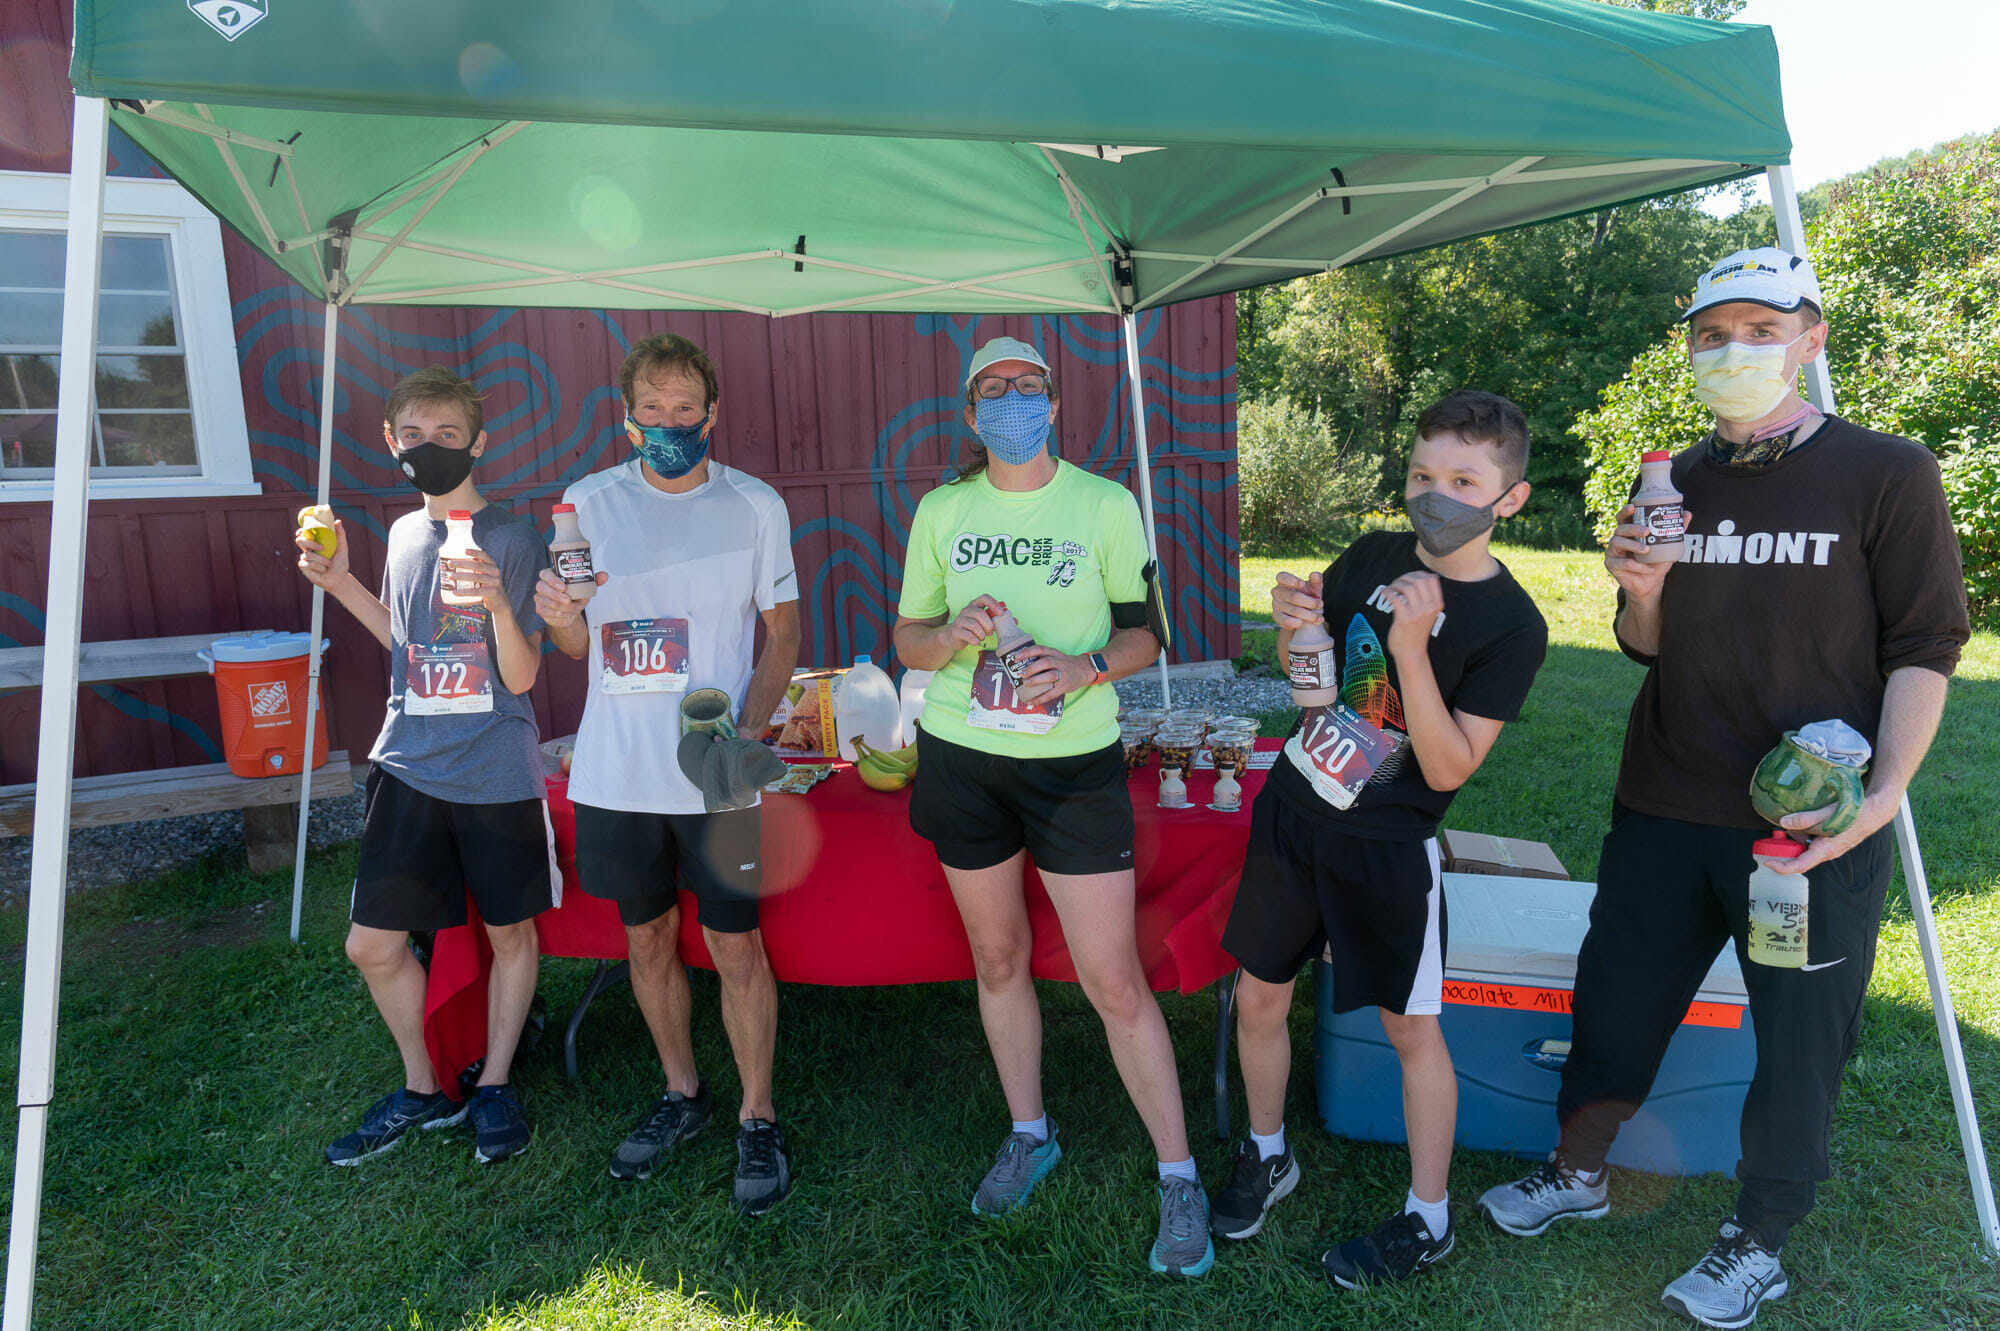 Slate valley trail runners with chocolate milk